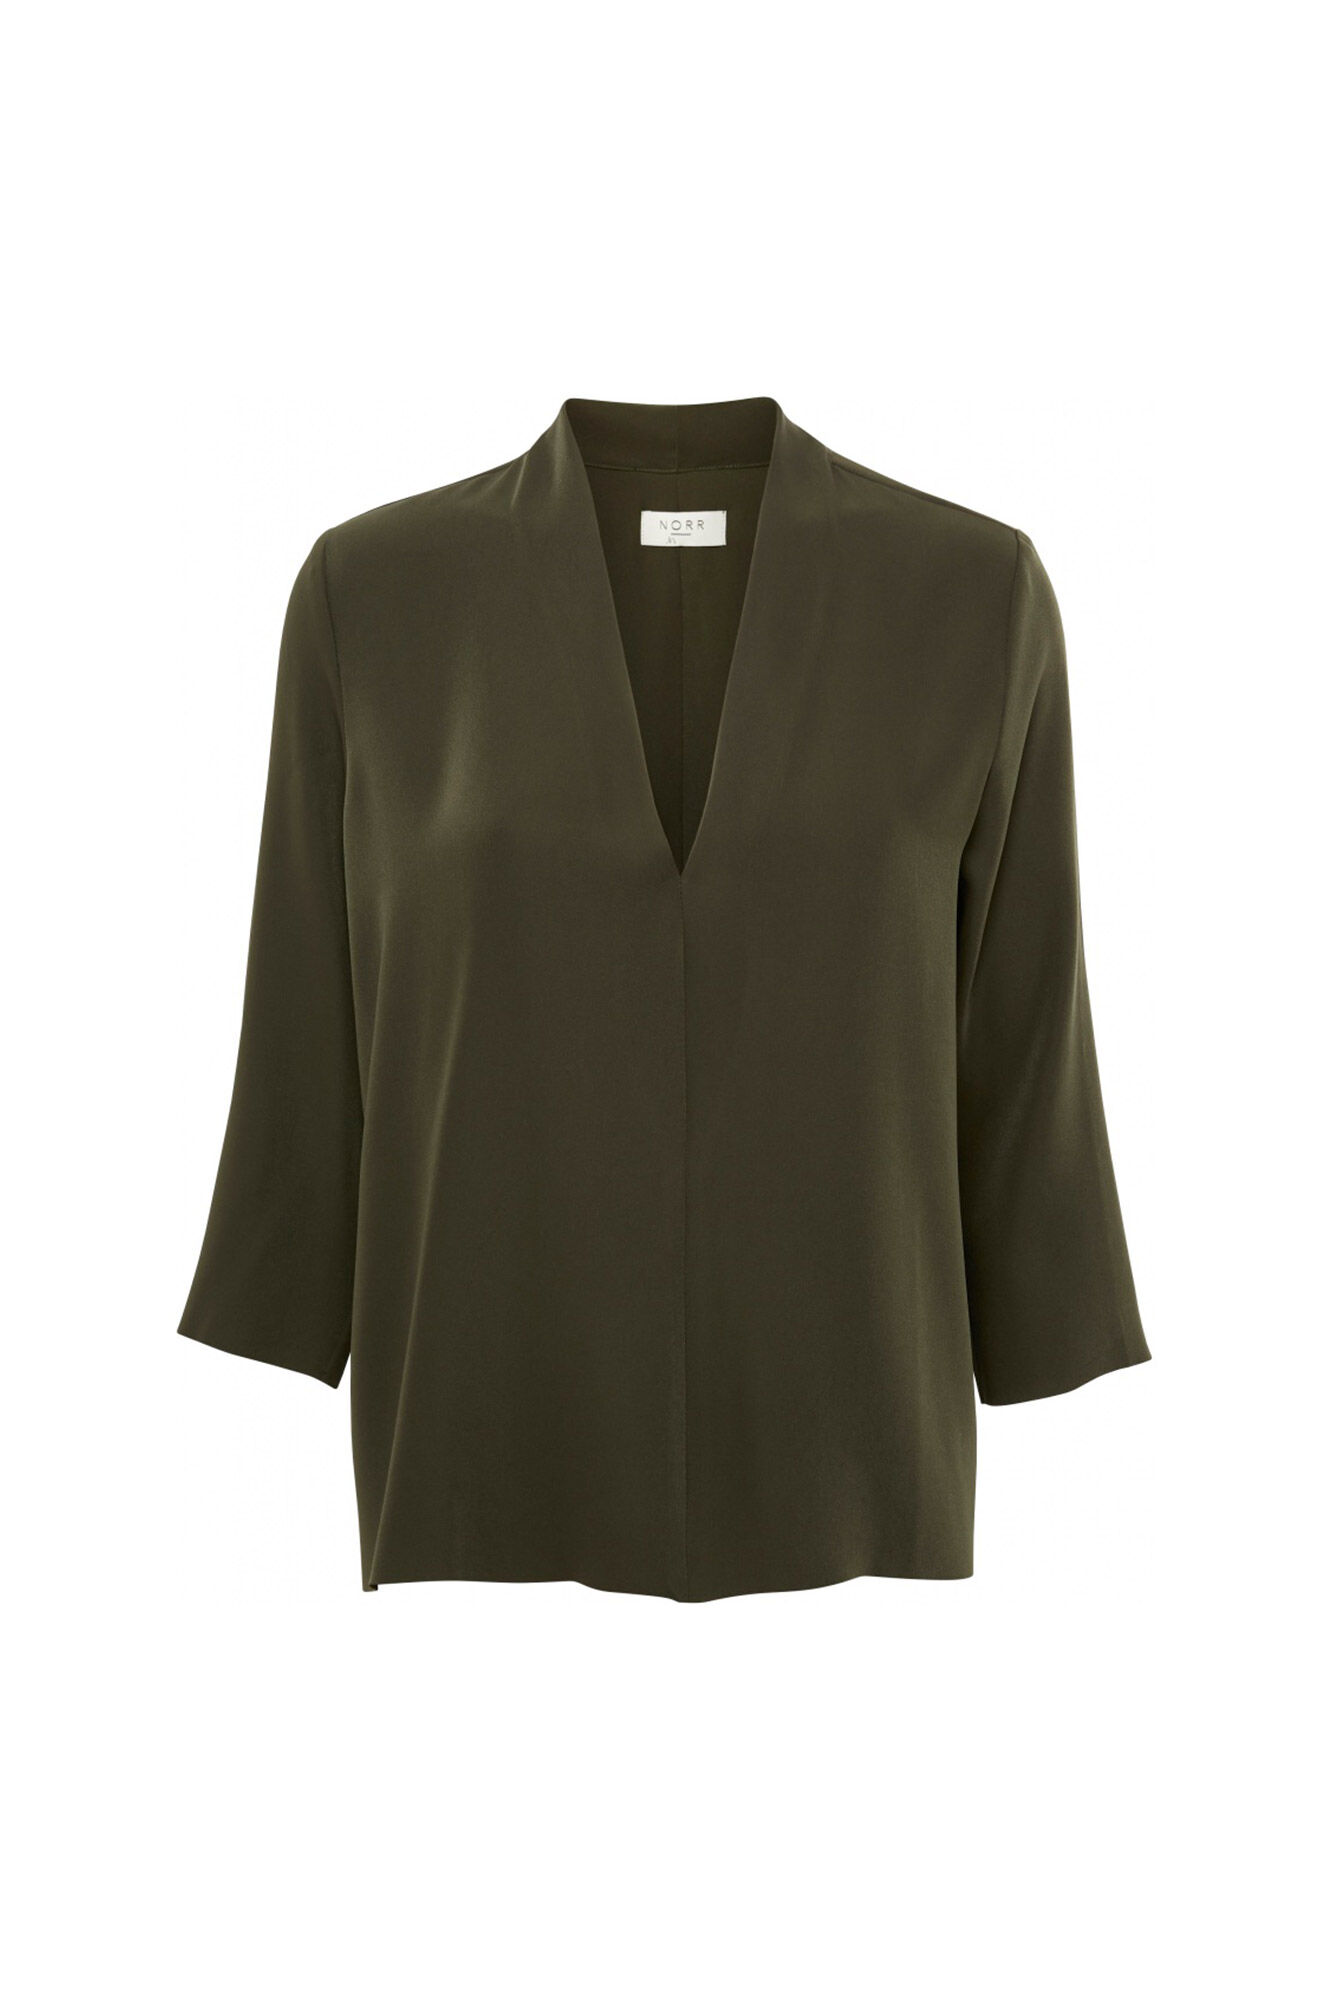 New ane top 11861429, ARMY